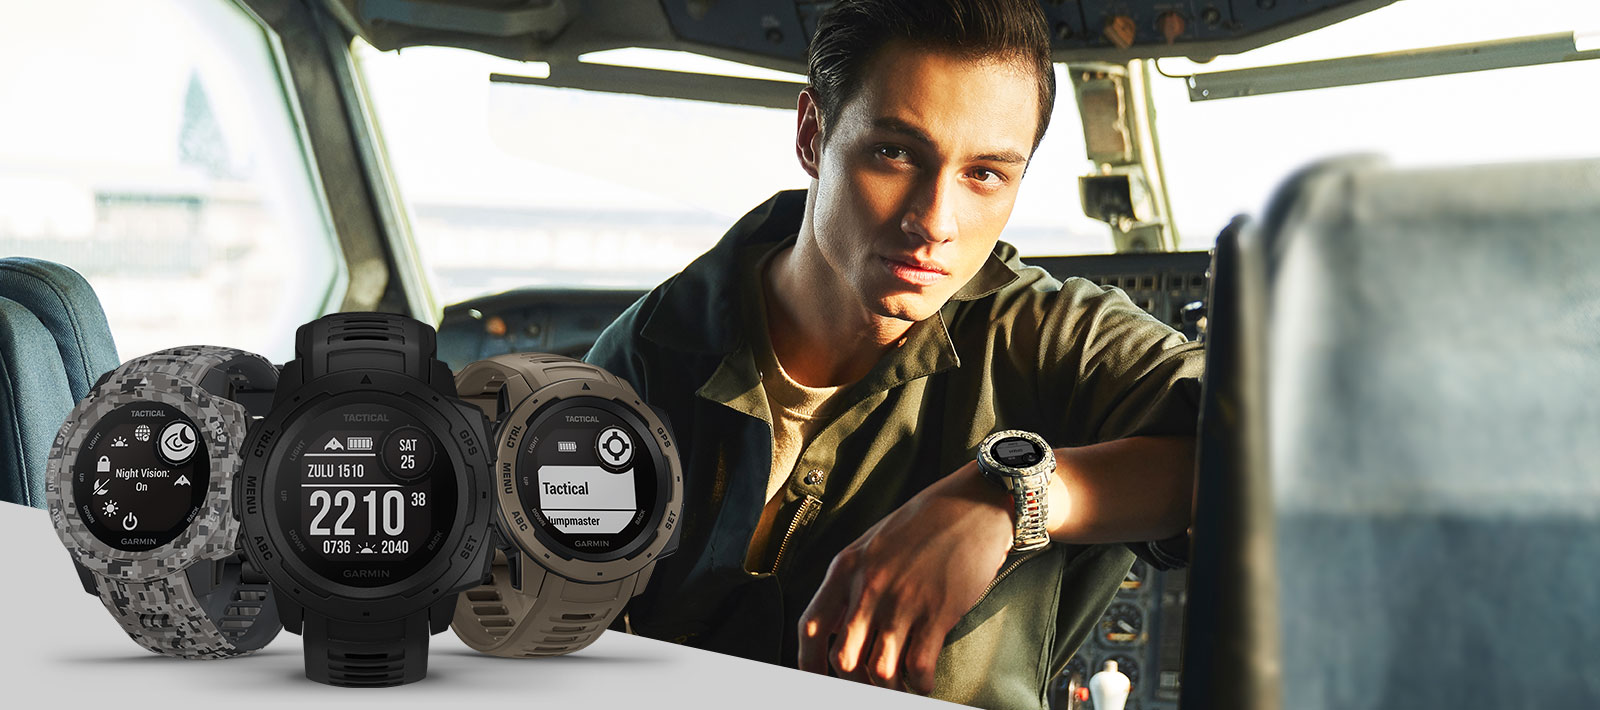 Instinct tactical - Rugged, Outdoor GPS watch